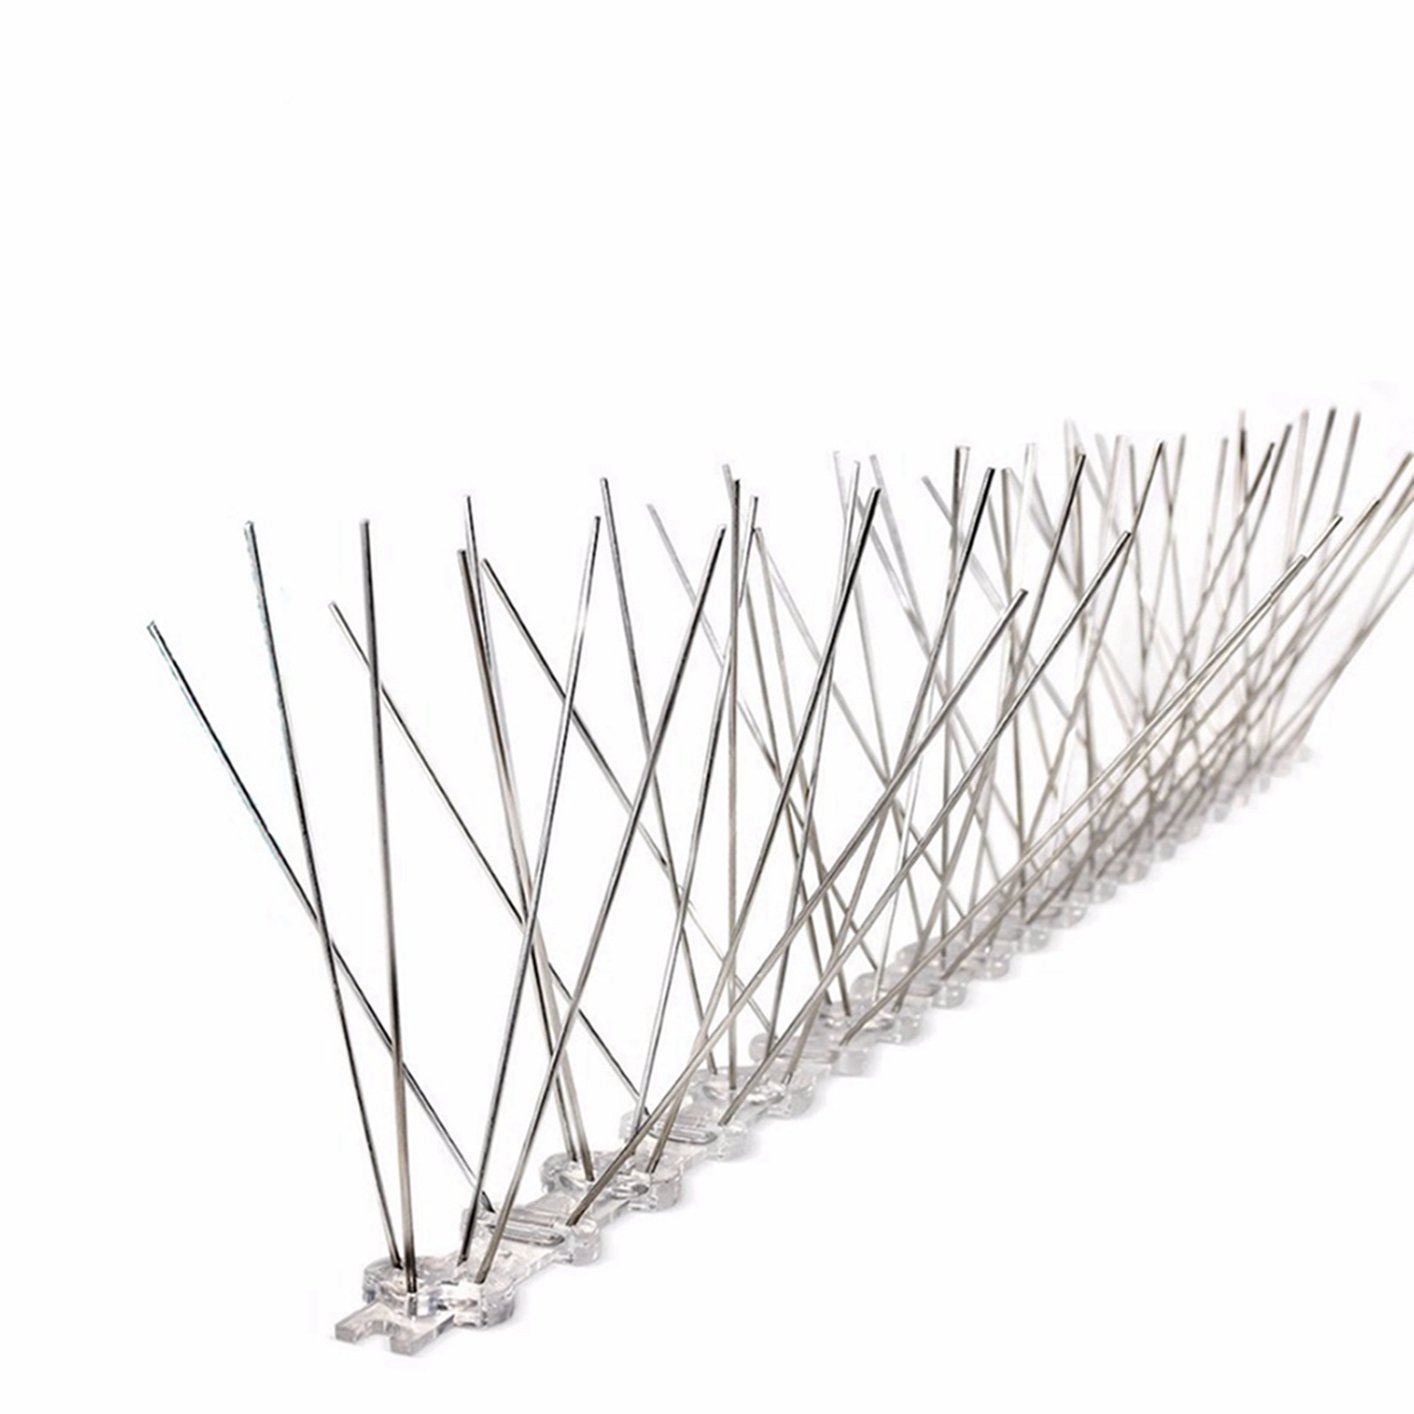 WANK Stainless Steel Bird Spike Strips,4 Row Pins Clear UV Protected Base,1 Pack